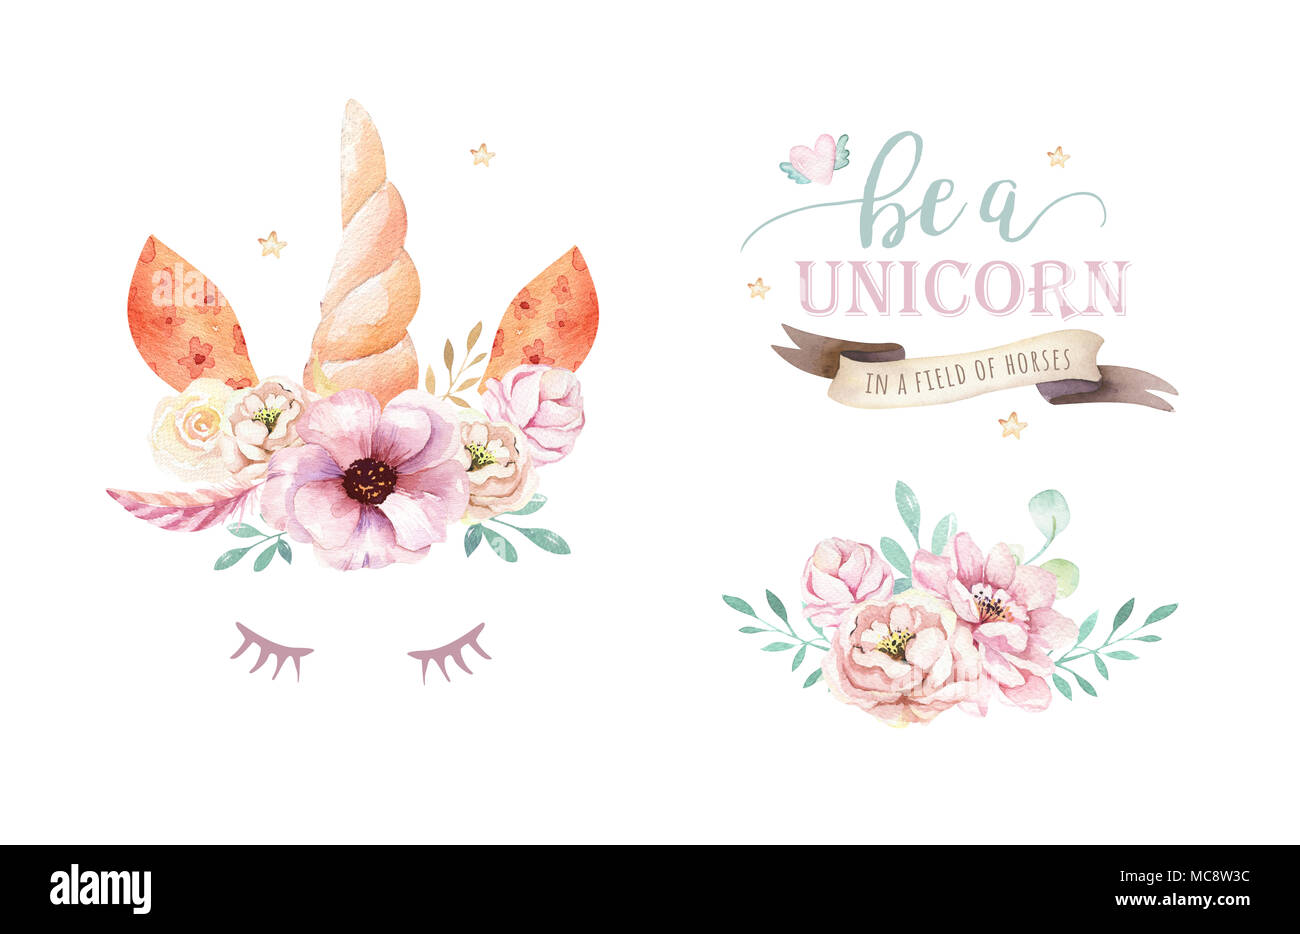 Isolated cute watercolor unicorn clipart with flowers nursery isolated cute watercolor unicorn clipart with flowers nursery unicorns illustration princess rainbow poster trendy pink cartoon pony horse mightylinksfo